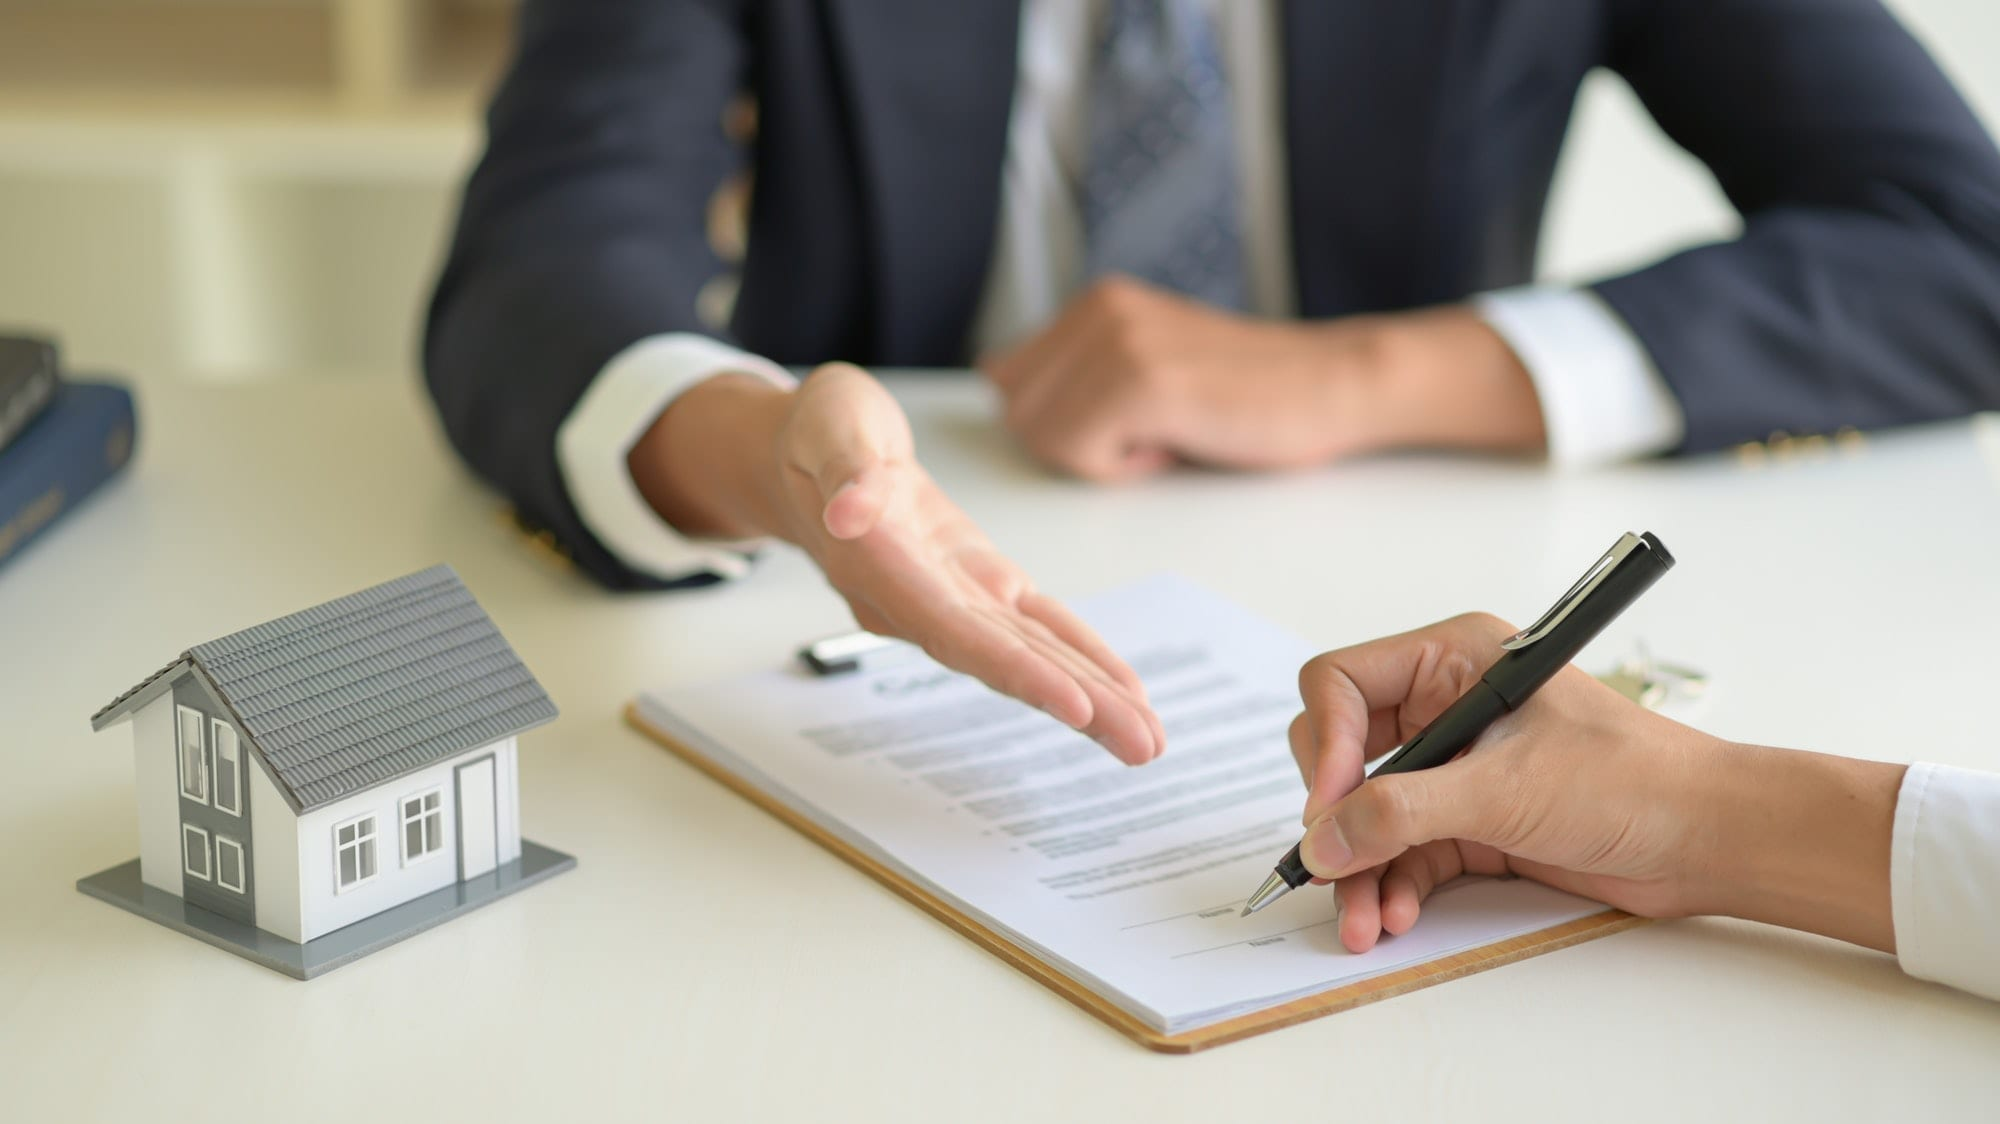 Signing a home purchase contract between the house broker and the client.